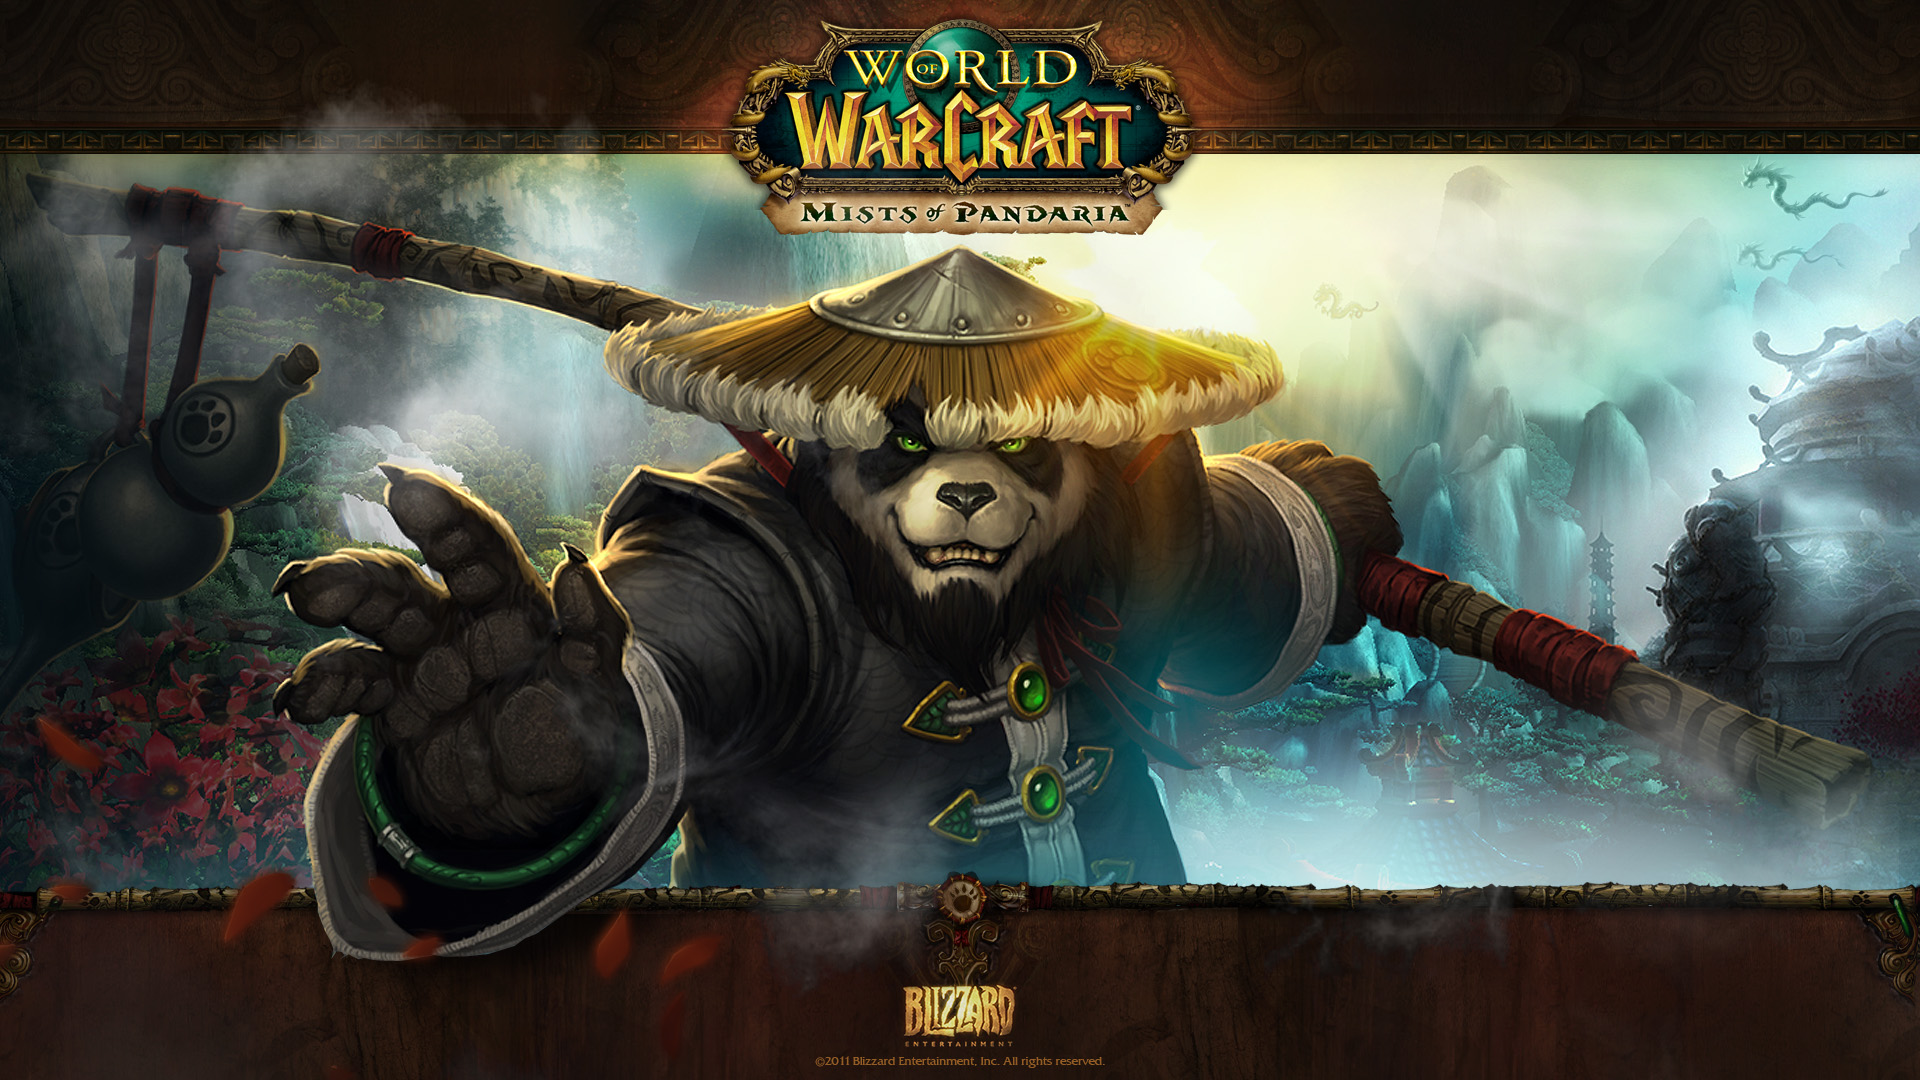 World Of Warcraft Mists Of Pandaria Wallpaper Hd Video Games